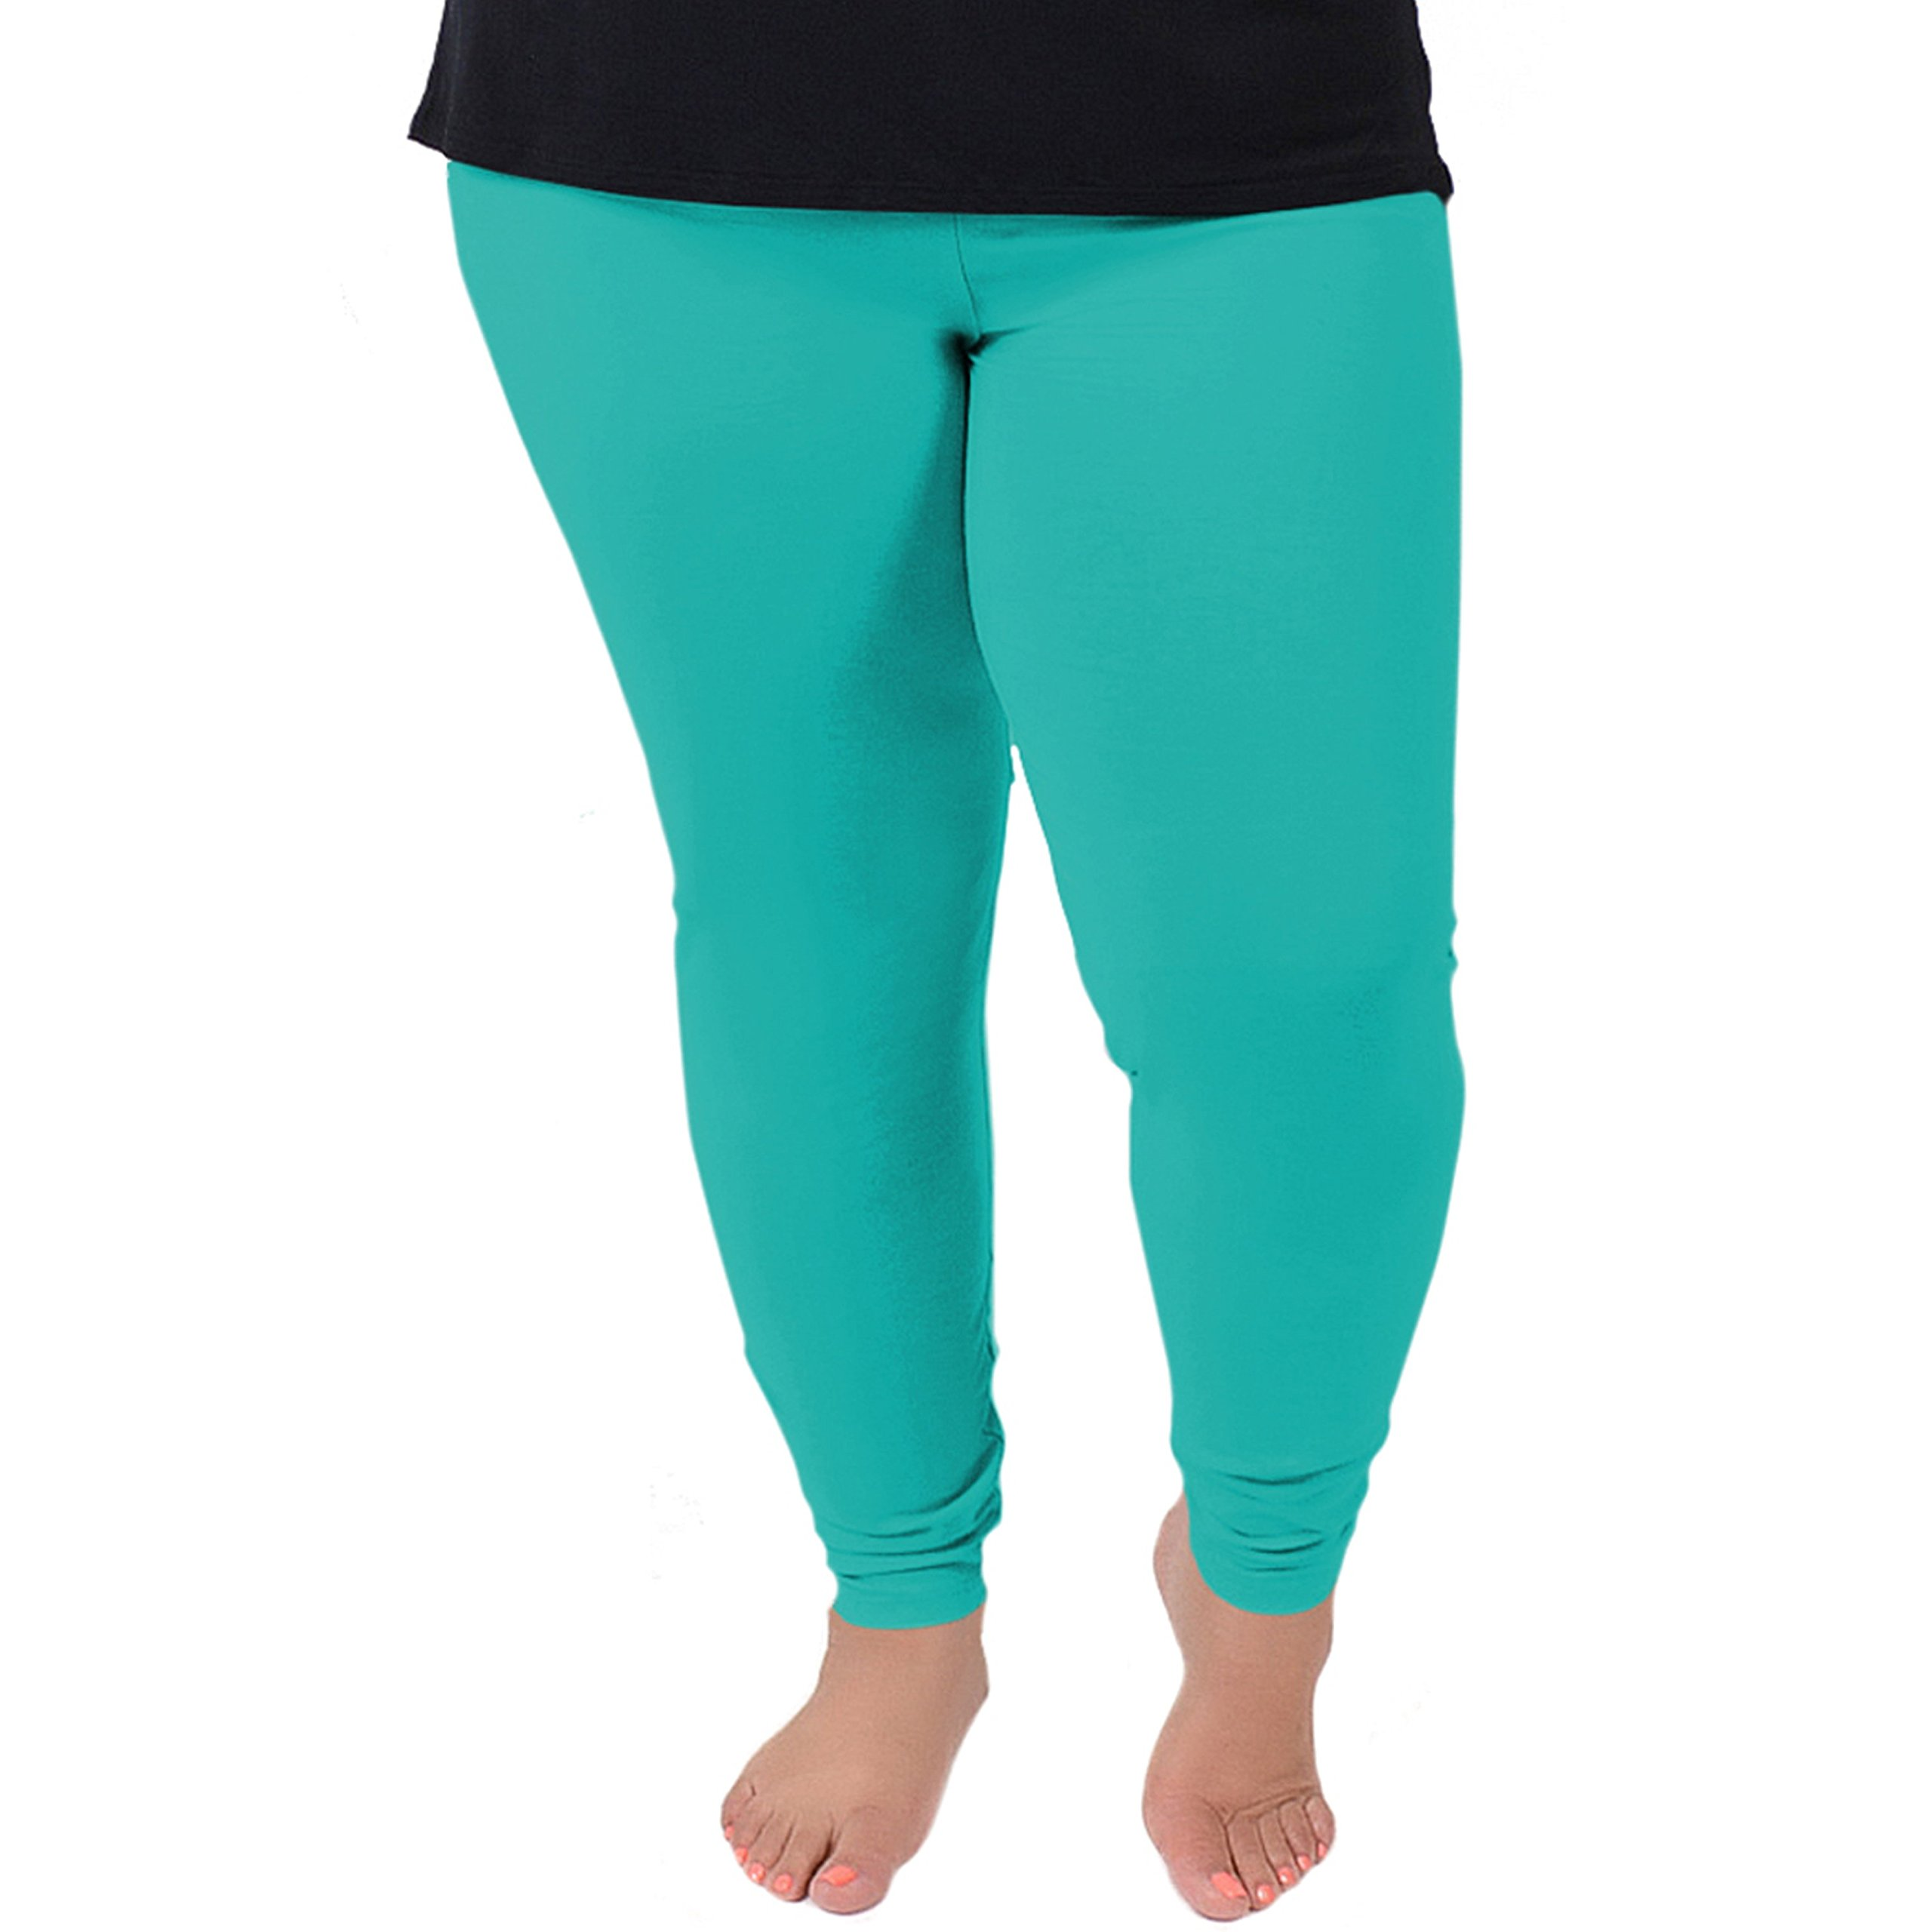 Stretch is Comfort Women's Plus Size Leggings Turquoise X-Large